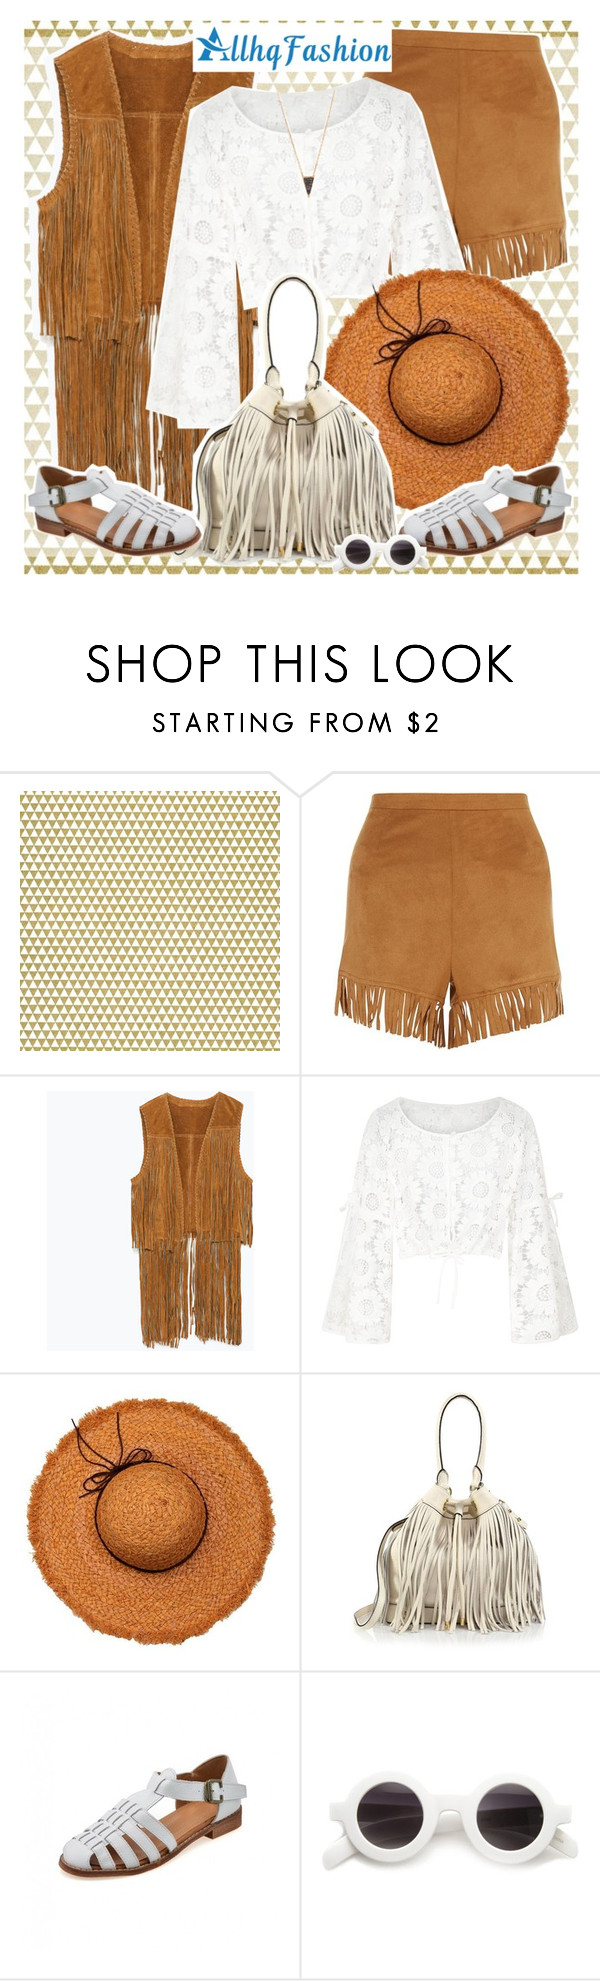 """""""1321. ALLHQFASHION Shoes!"""" by marymary91 ❤ liked on Polyvore featuring Zara, La Fiorentina, Milly, shoes and allhqfashion"""